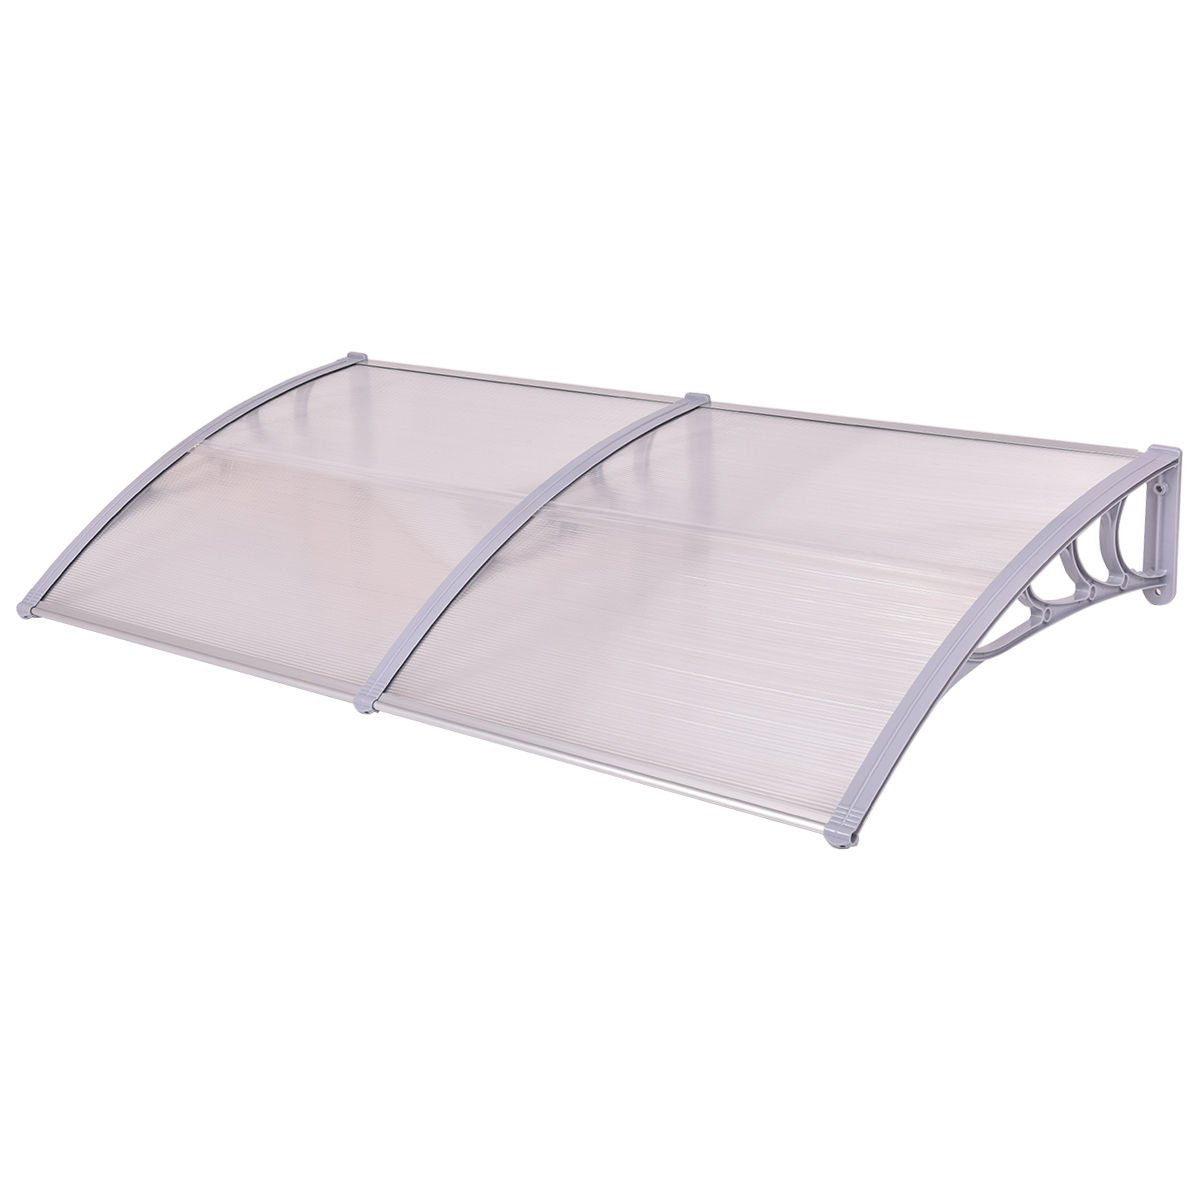 Tangkula 40''x 80'' Window Awning Modern Polycarbonate Cover Front Door Outdoor Patio Canopy Sun shetter 3 Colors (Clear with grey edge)